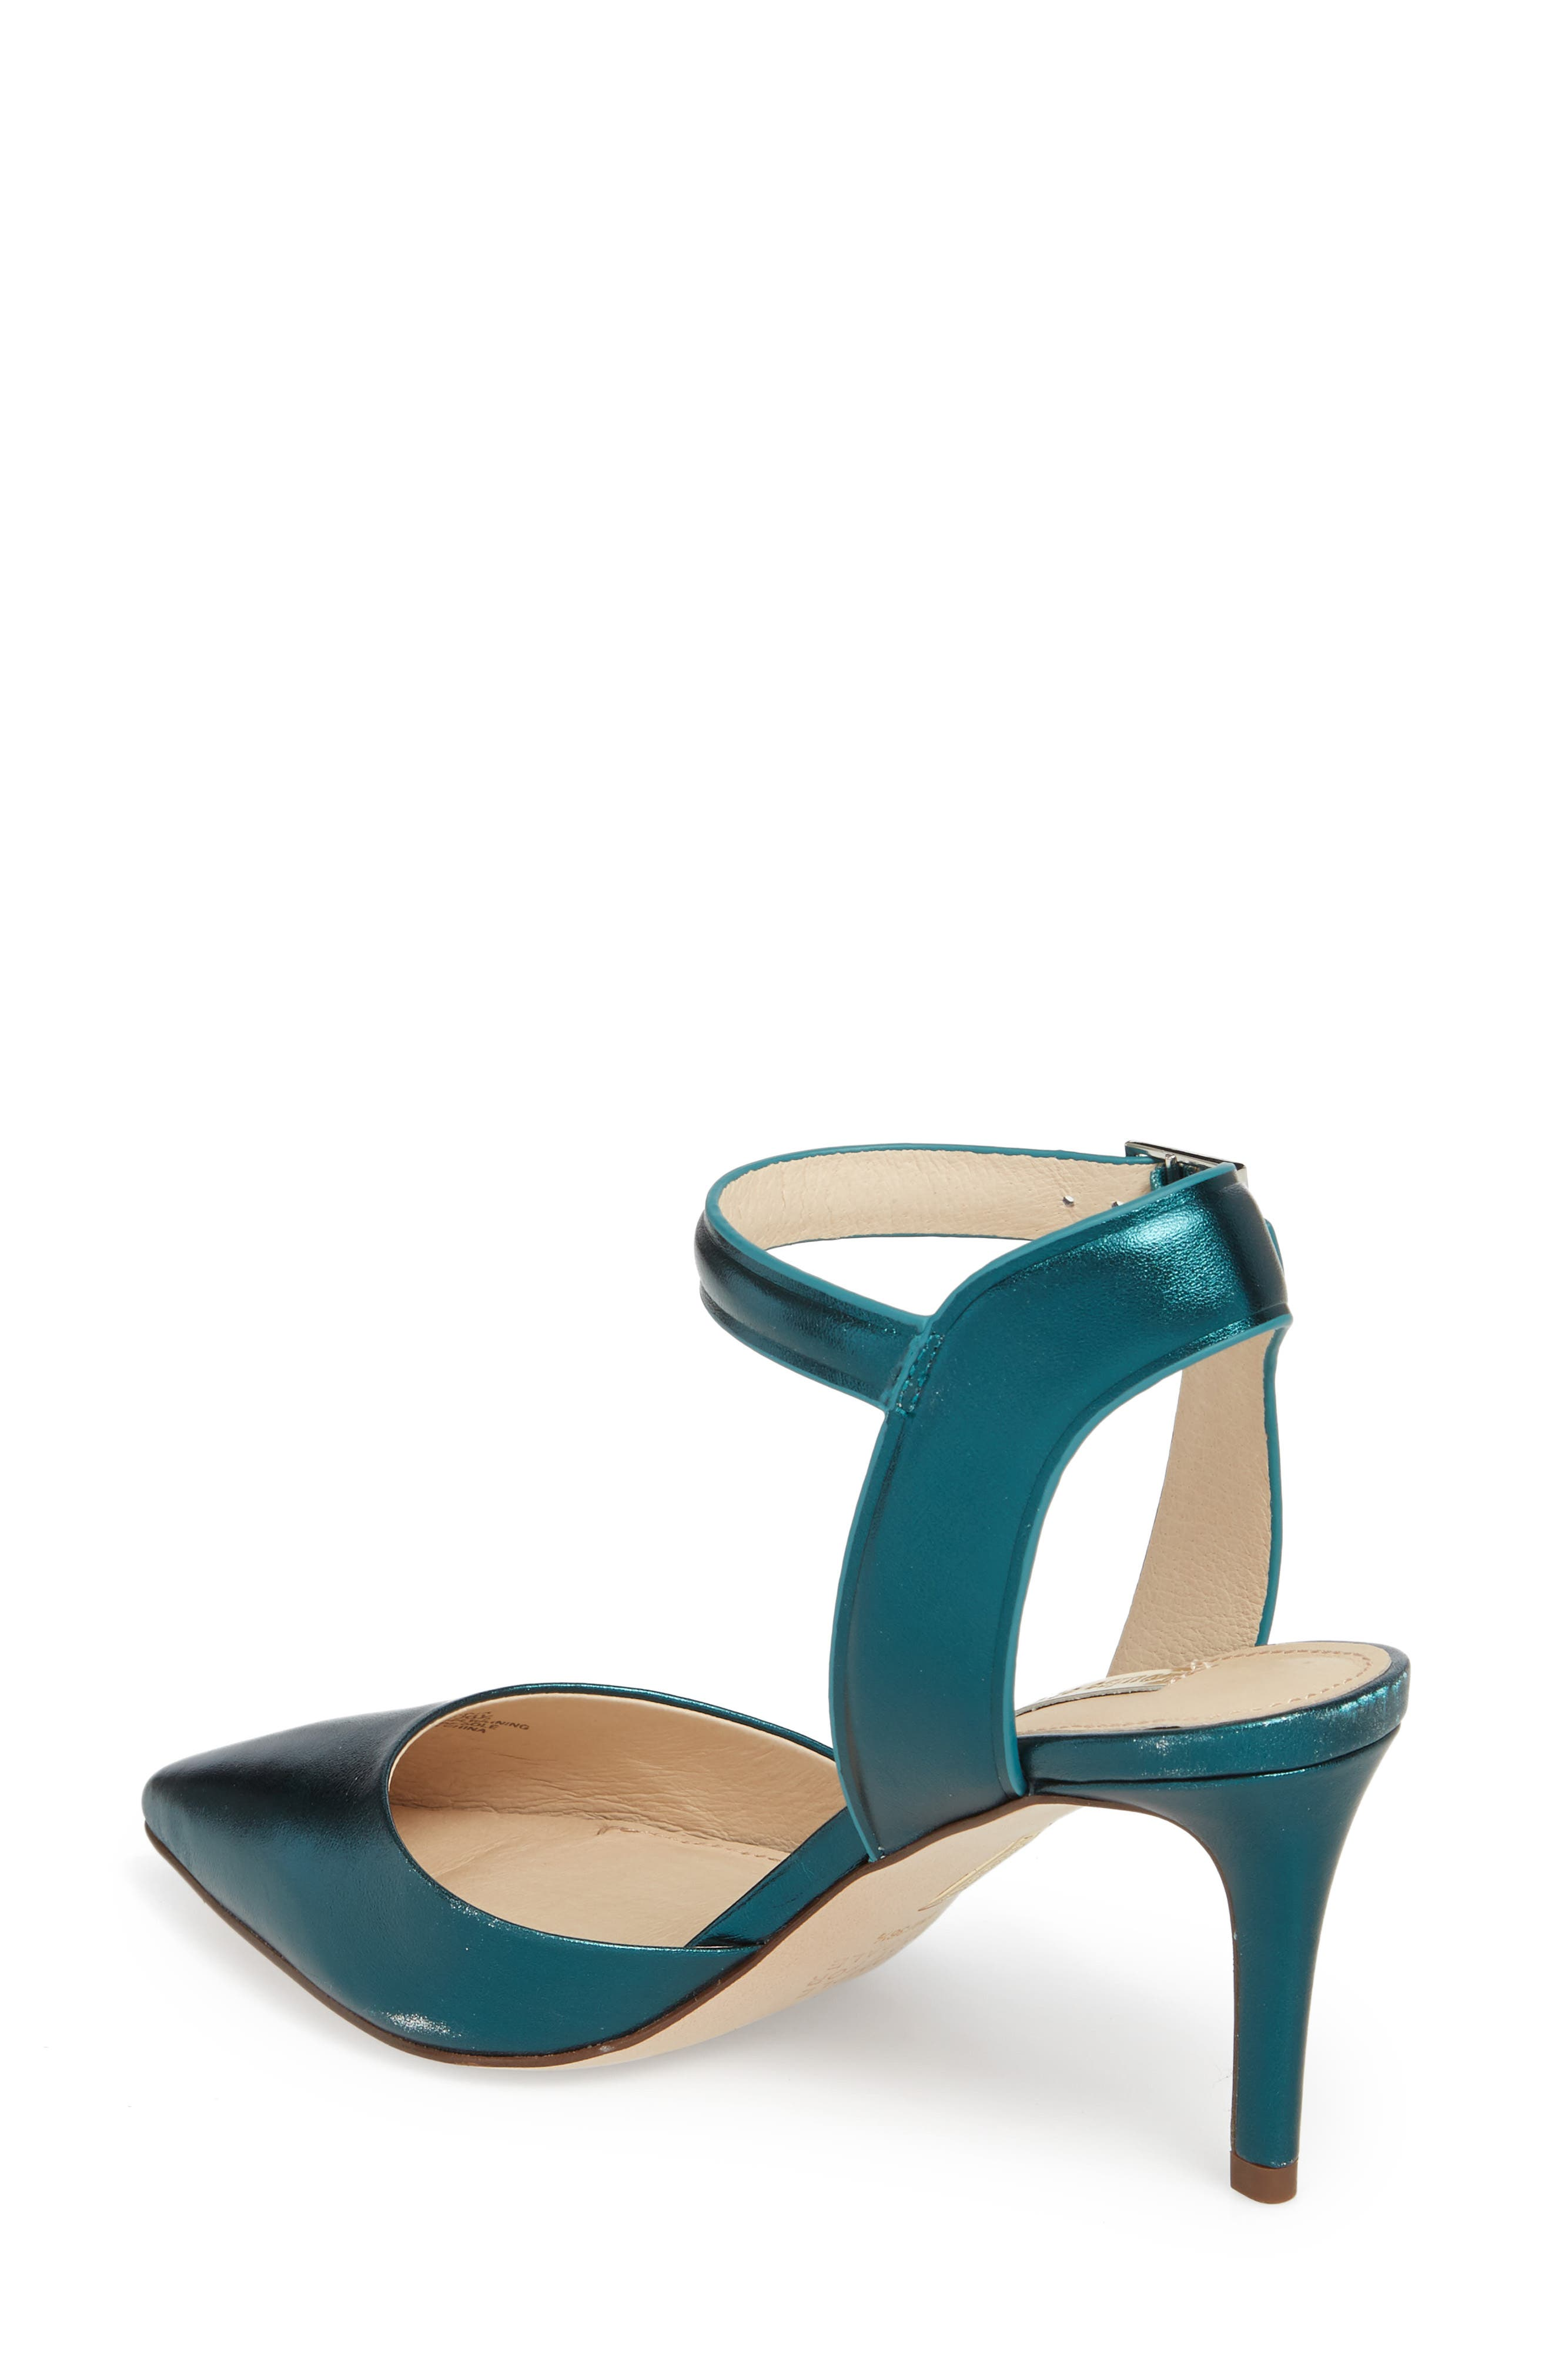 Kota Ankle Strap Pump,                             Alternate thumbnail 2, color,                             Teal Metallic Leather